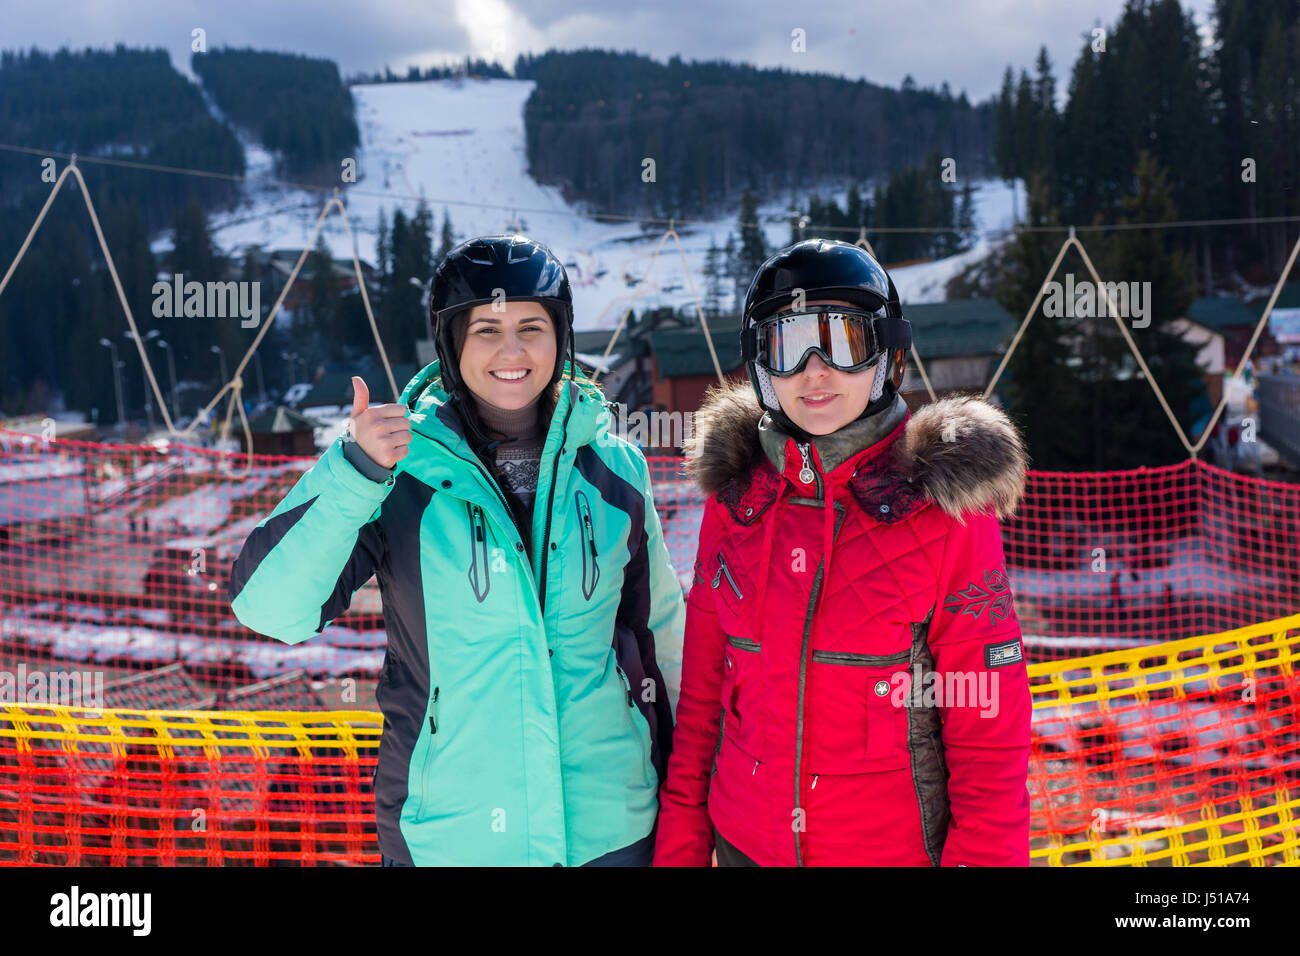 Young smiling women in ski suits, with helmets and ski goggles standing in a ski-resort in winter period - Stock Image